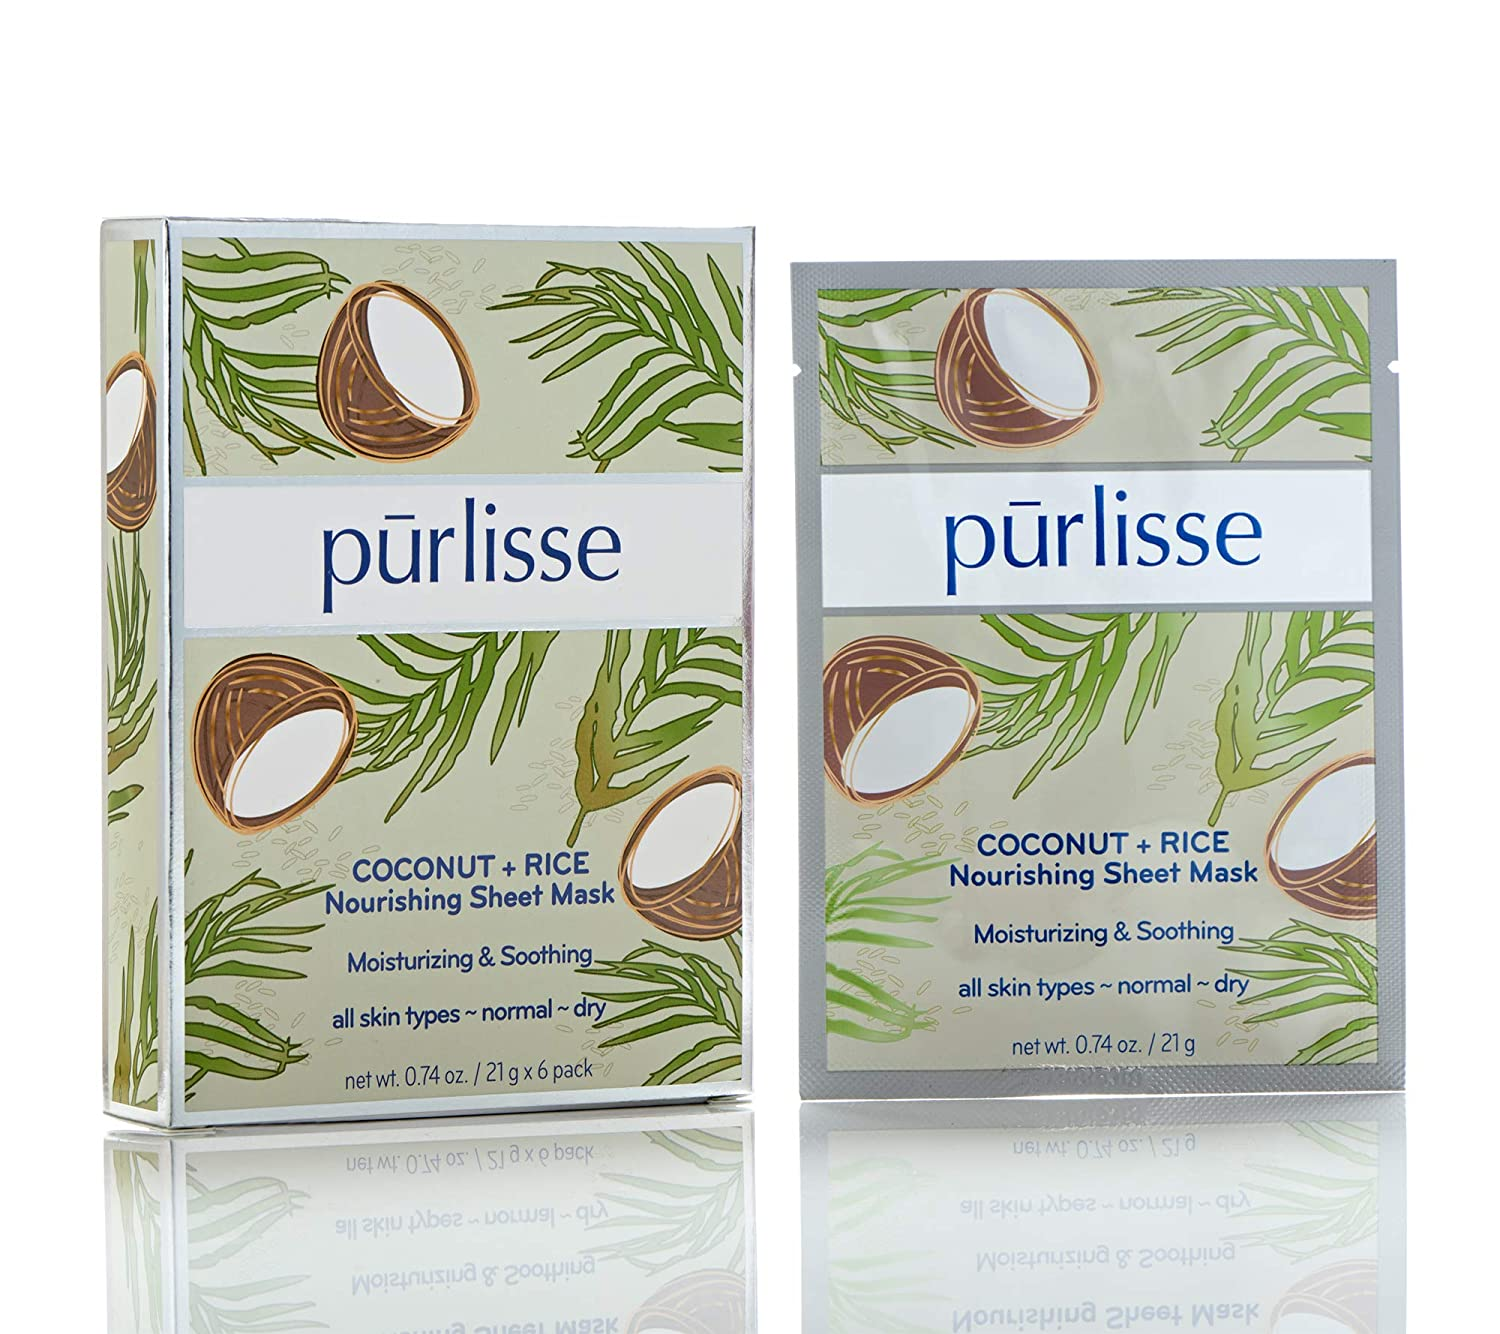 purlisse Coconut and Rice Nourishing Sheet Face Mask - Natural Moisturizing Korean Facial Mask for Dry and Combination Skin, 6 Pack Set of Sheet Masks